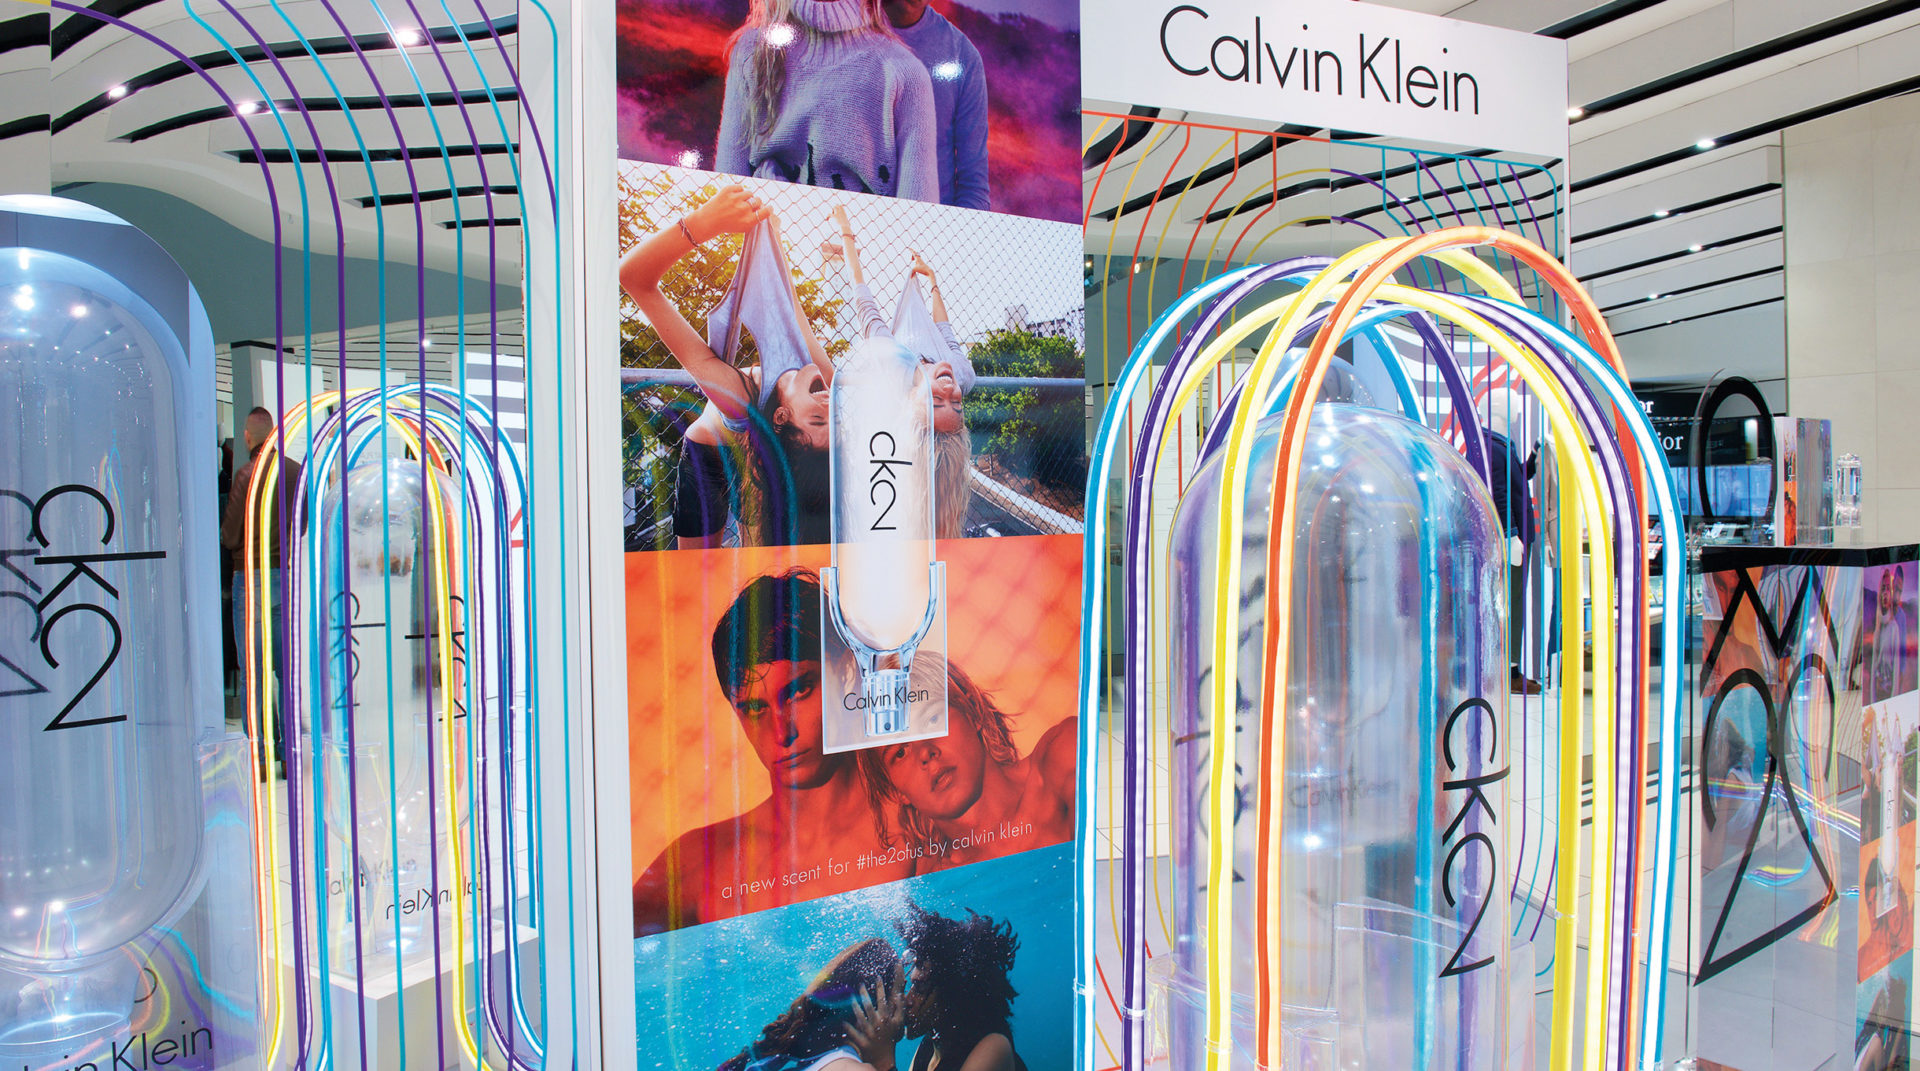 Calvin Klein CK2 Launch in Debenhams